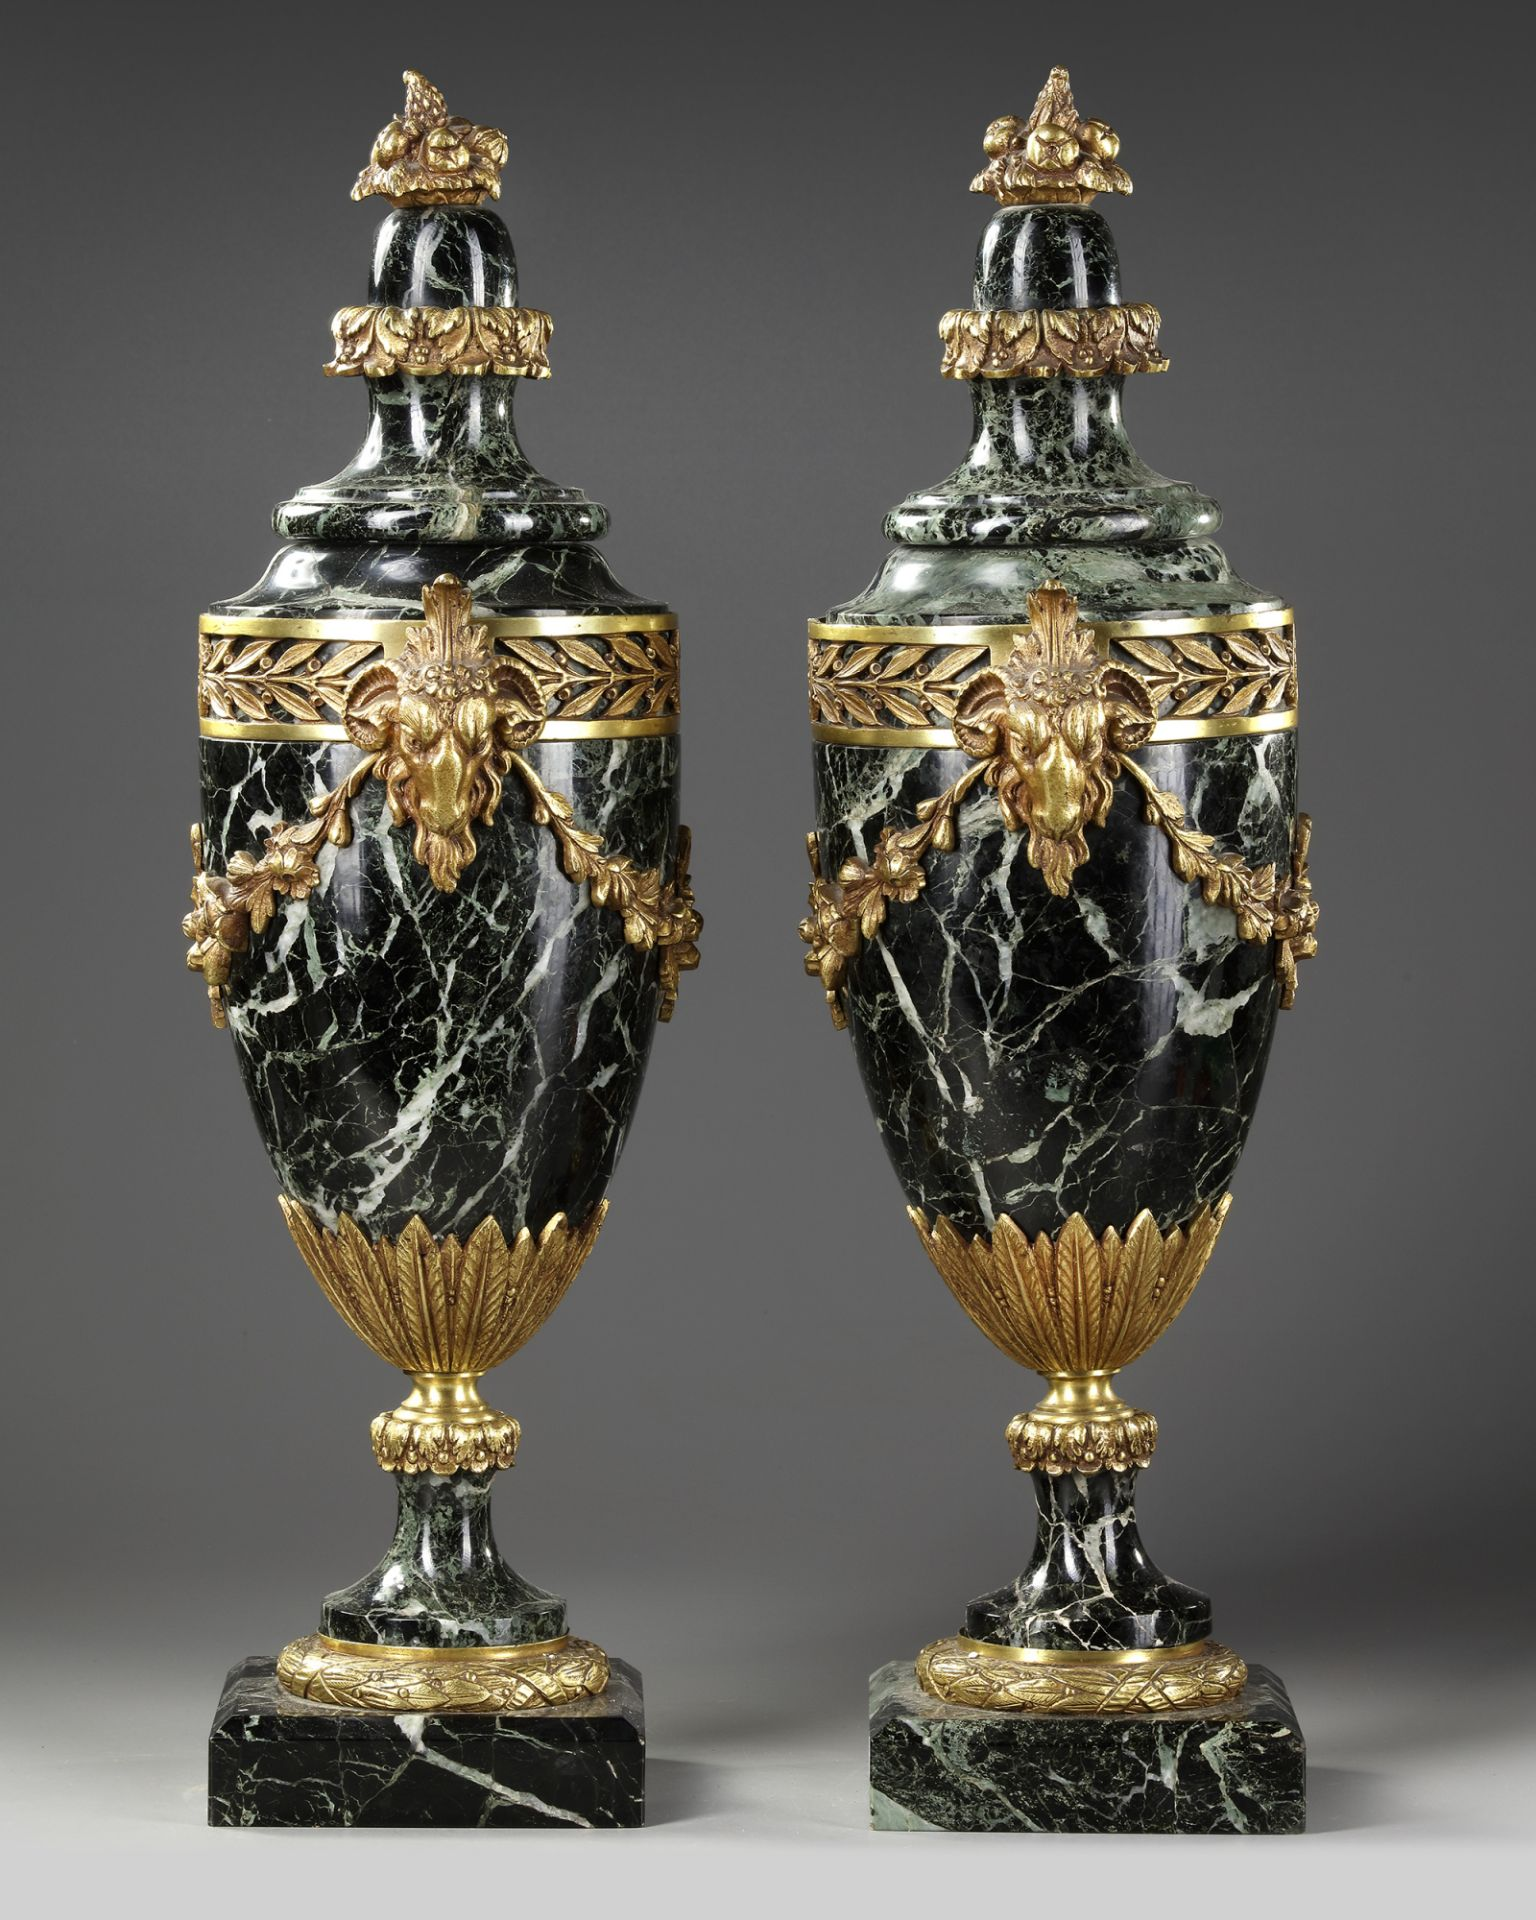 A PAIR OF MARBLE CASSOLETTES, FRANCE, 19TH CENTURY - Image 2 of 3